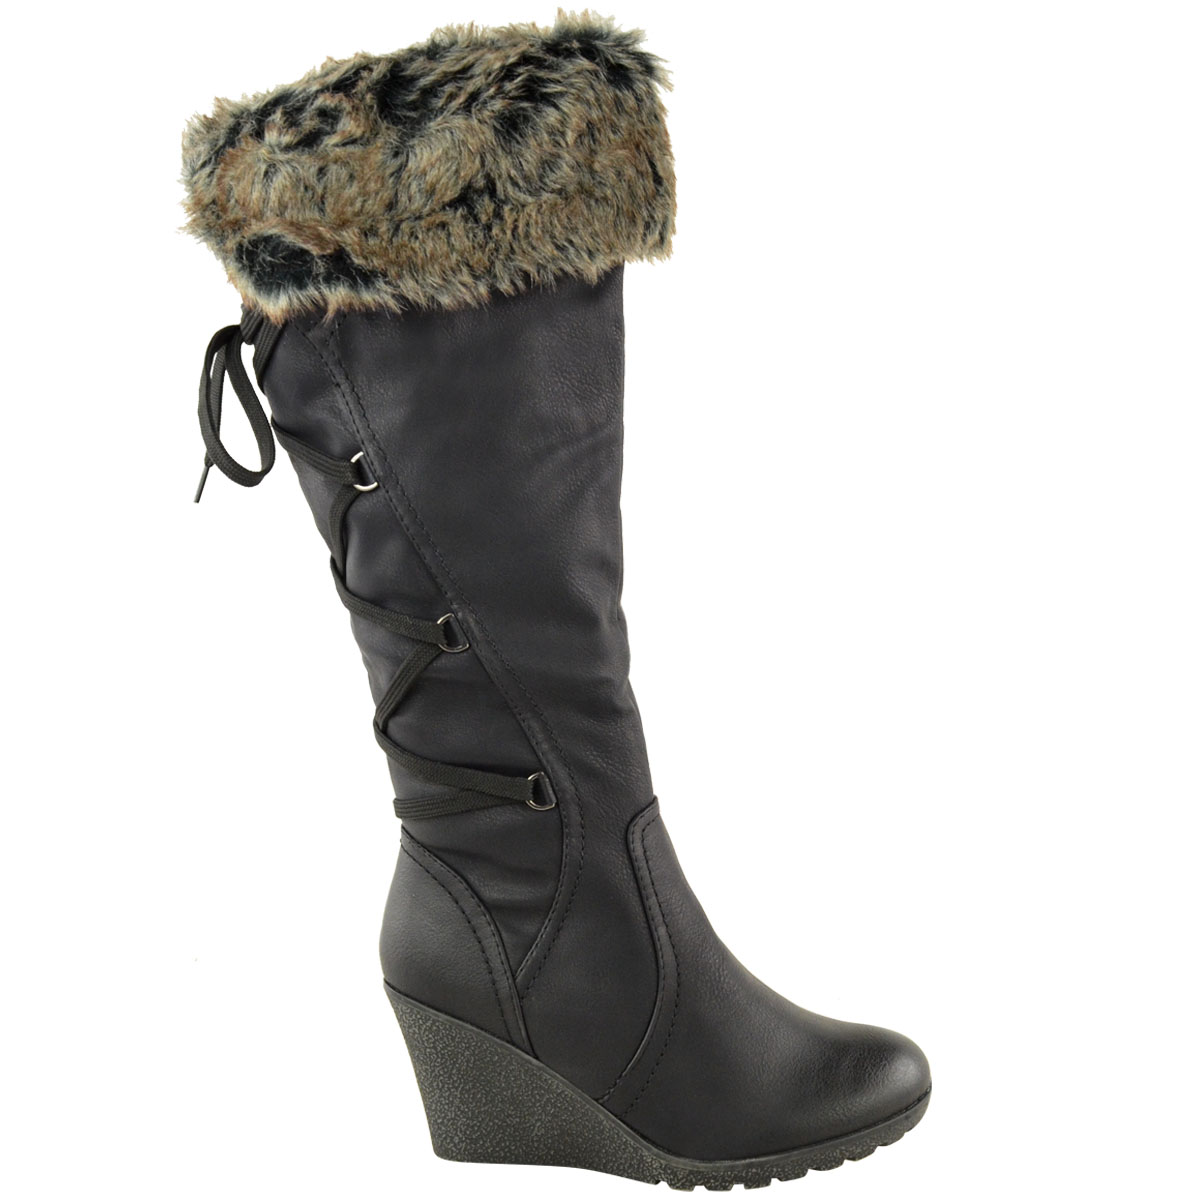 WOMENS-LADIES-MID-WEDGE-HIGH-HEEL-FUR-LINED-WARM-WINTER-KNEE-CALF-ZIP-BOOTS-SIZE thumbnail 4